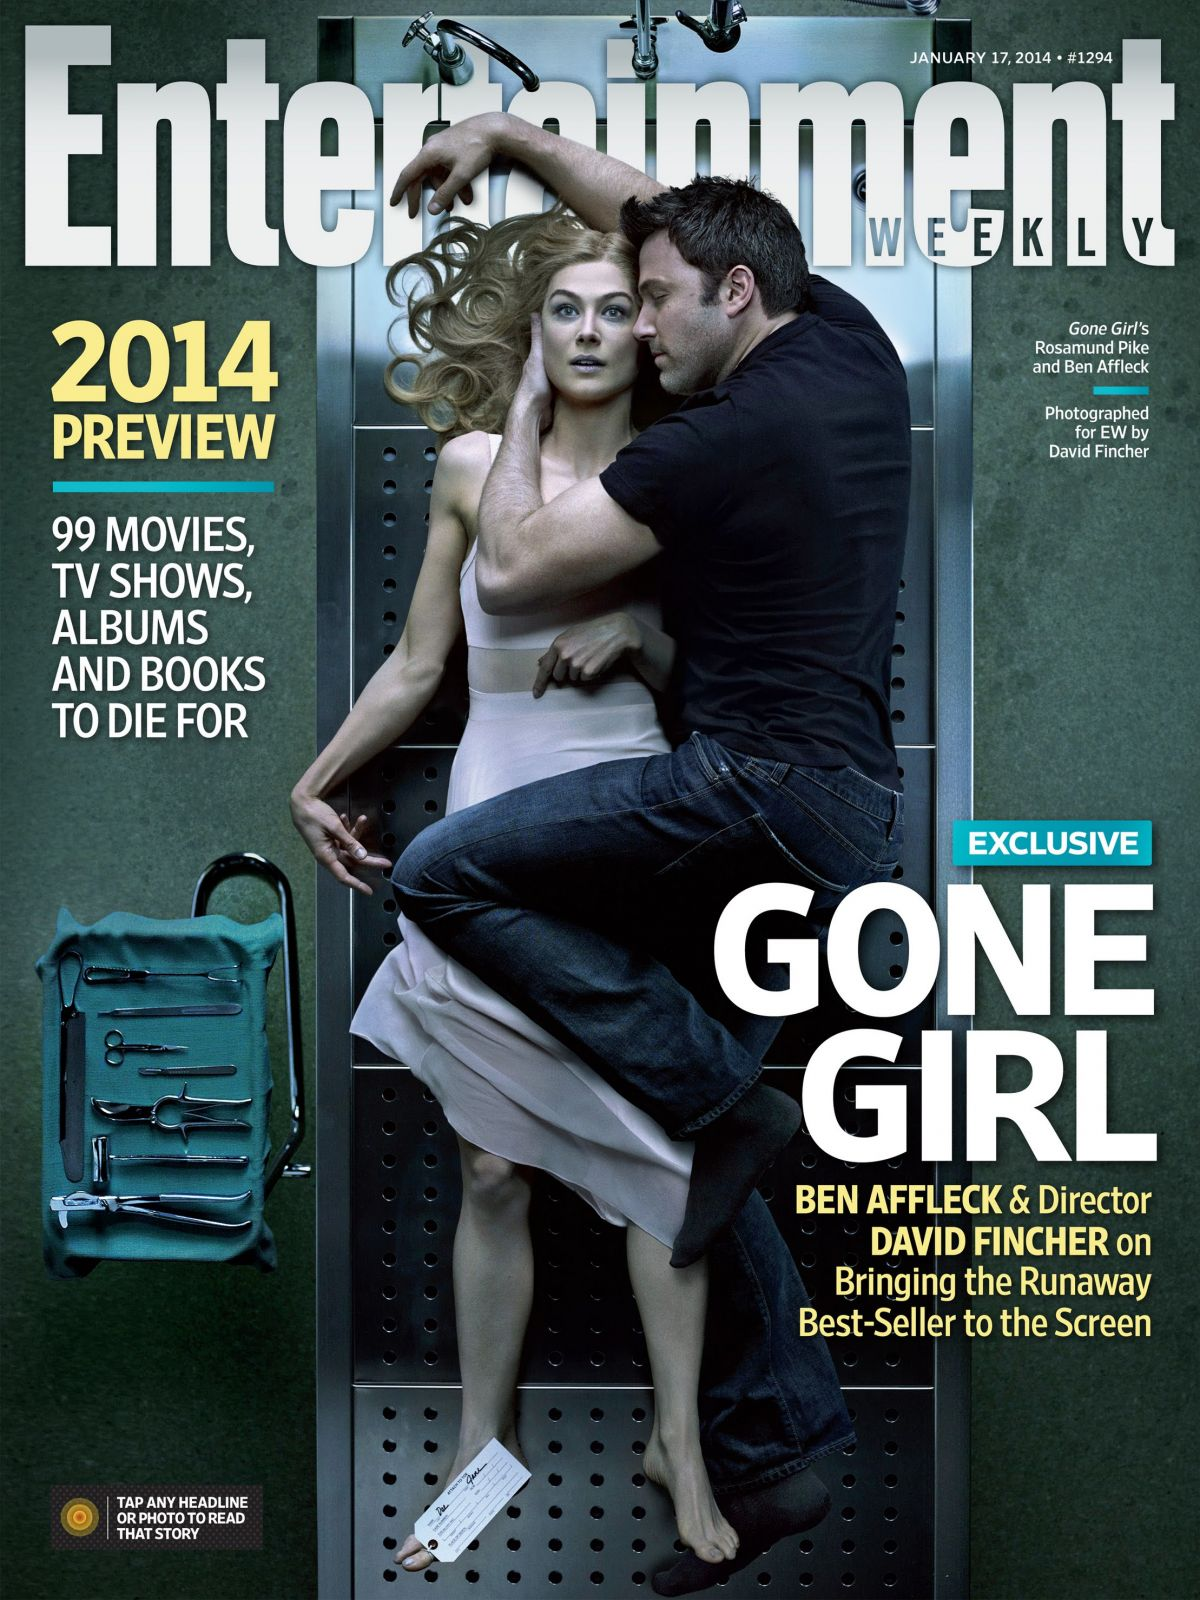 ROSAMUND PIKE and Ben Affleck on the Cover of Entertainment Weekly    Rosamund Pike 2014